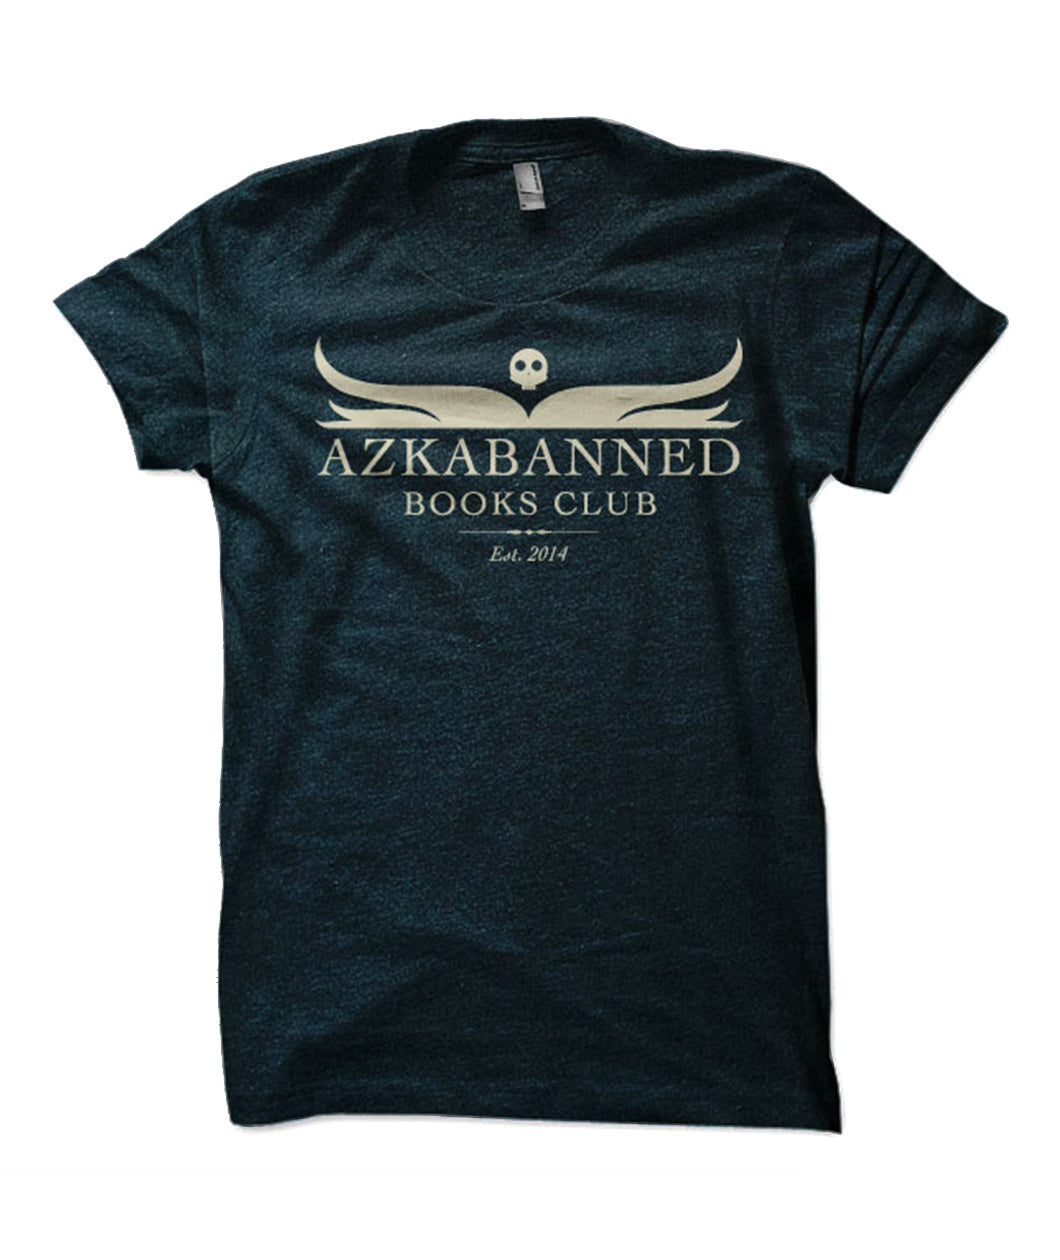 Azkabanned Book Club Shirt